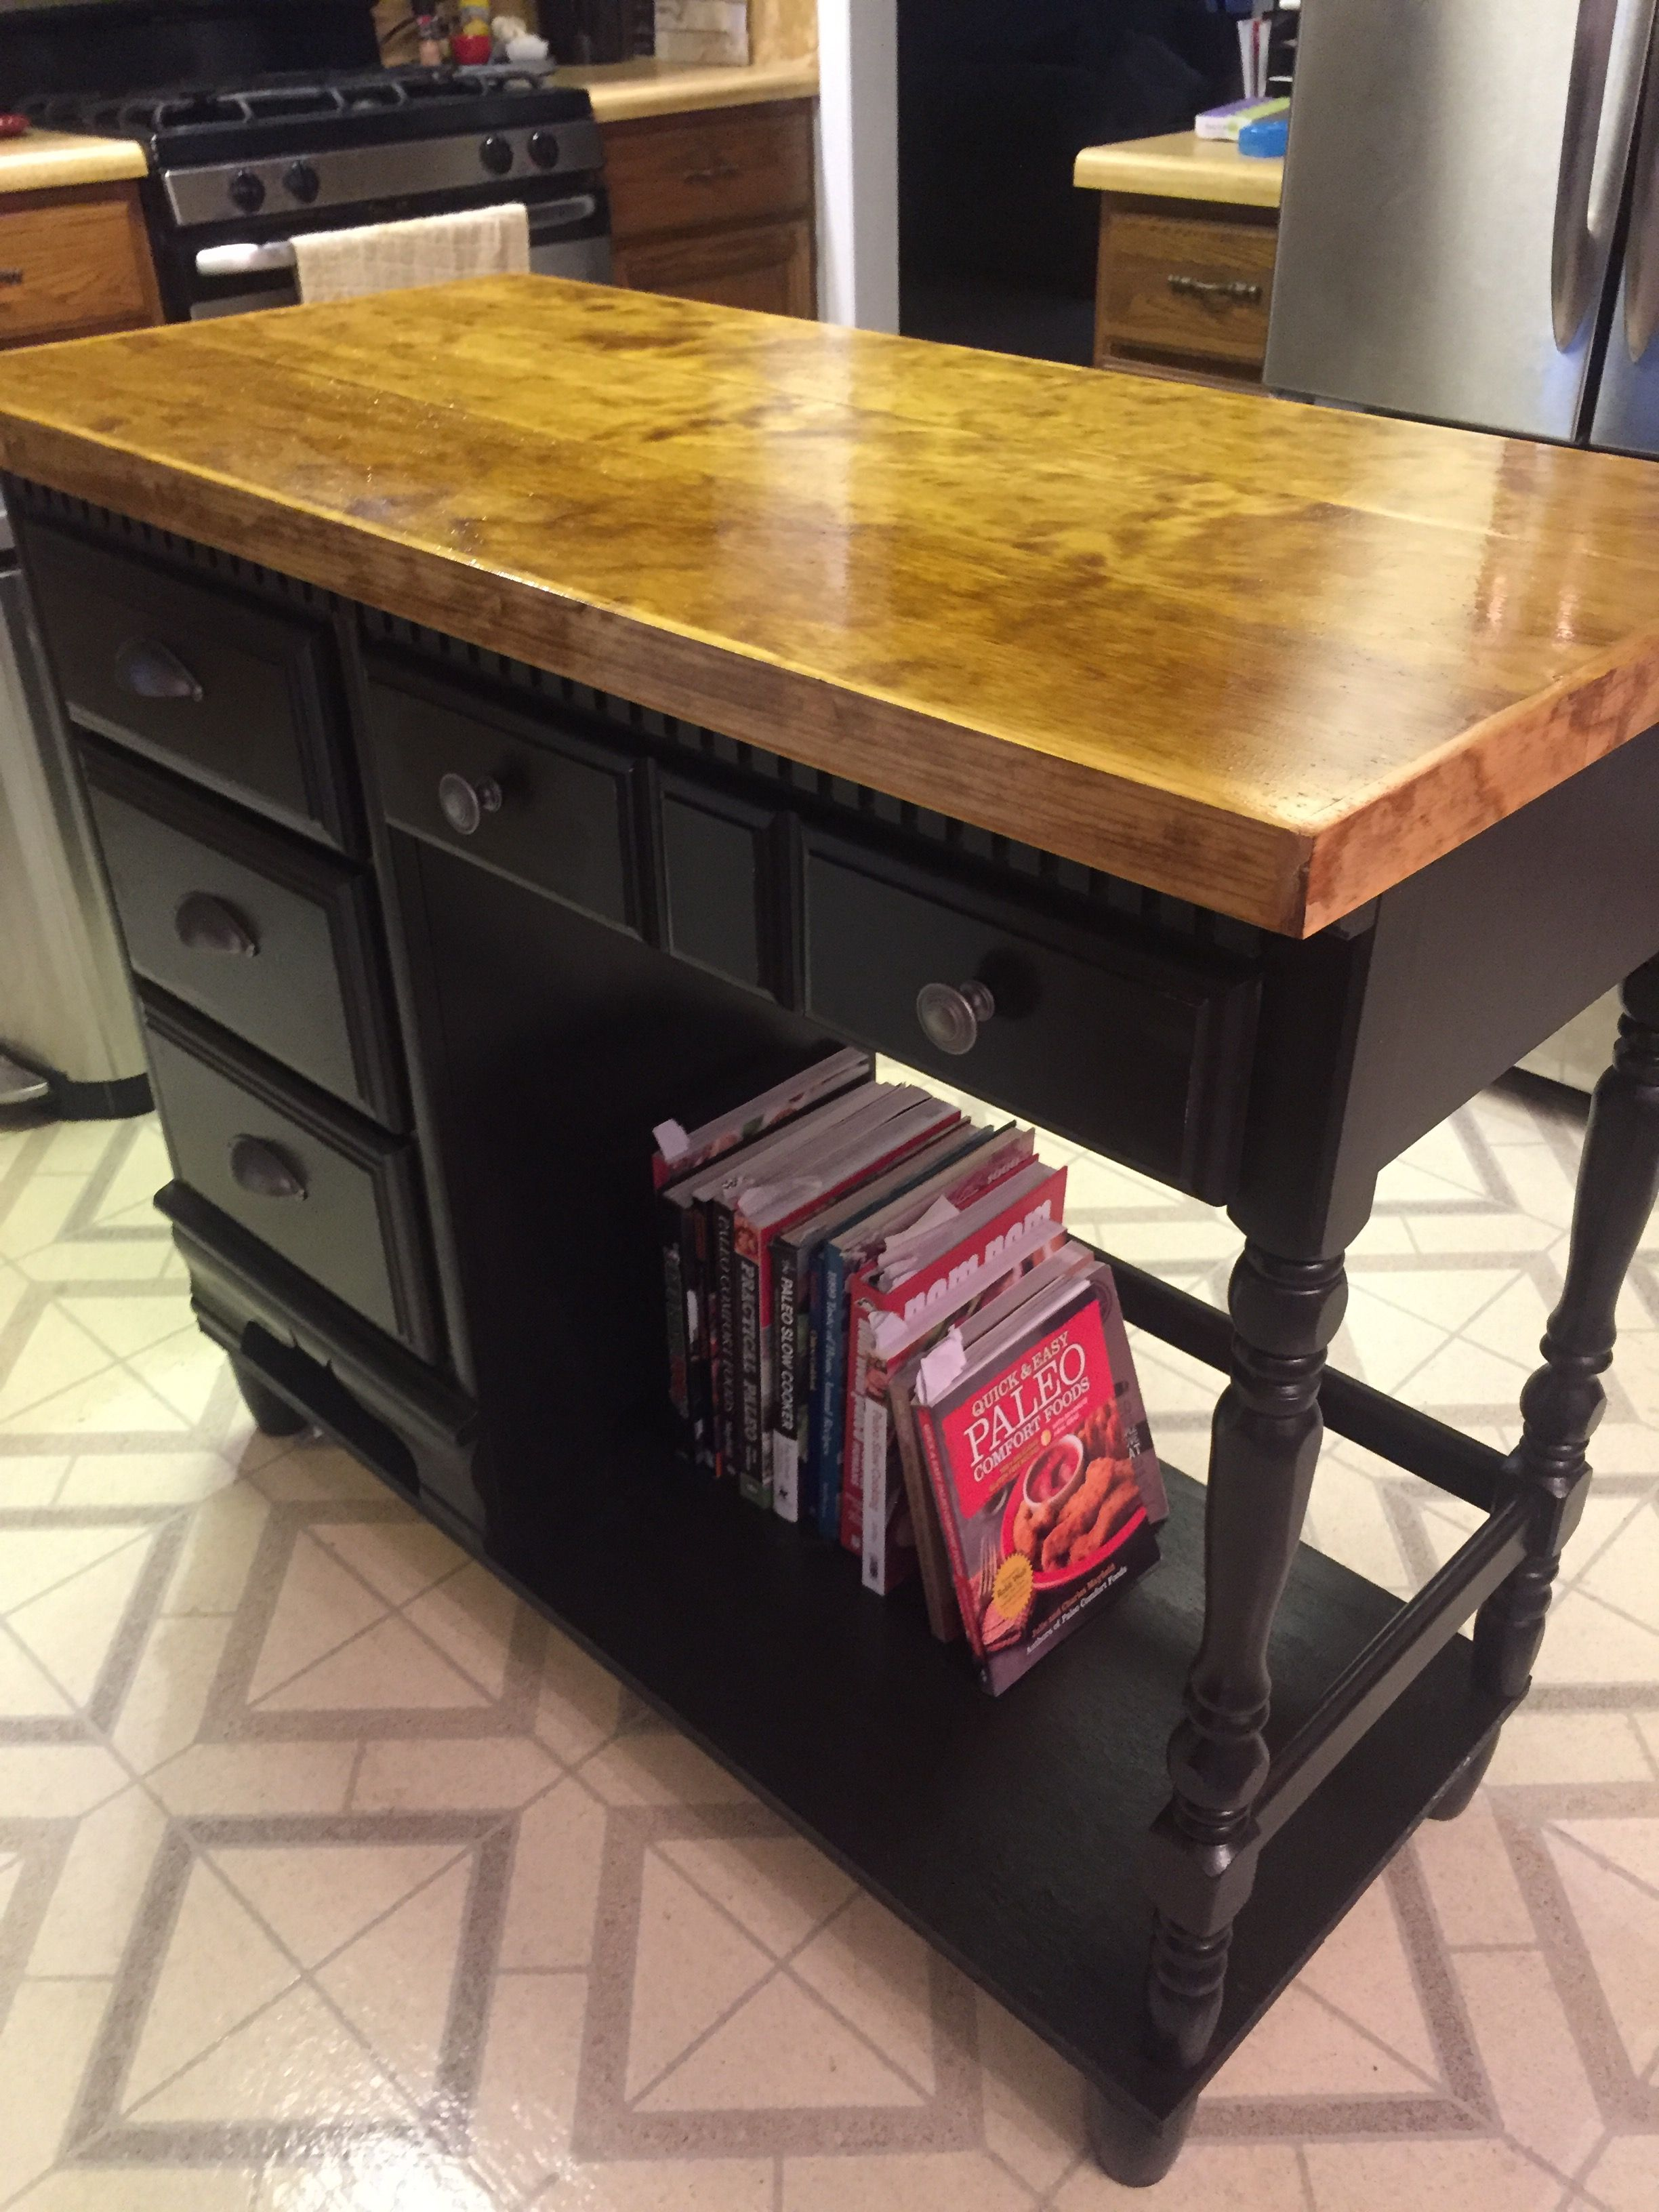 20 recommended small kitchen island ideas on a budget repurposed children s and desks. Black Bedroom Furniture Sets. Home Design Ideas